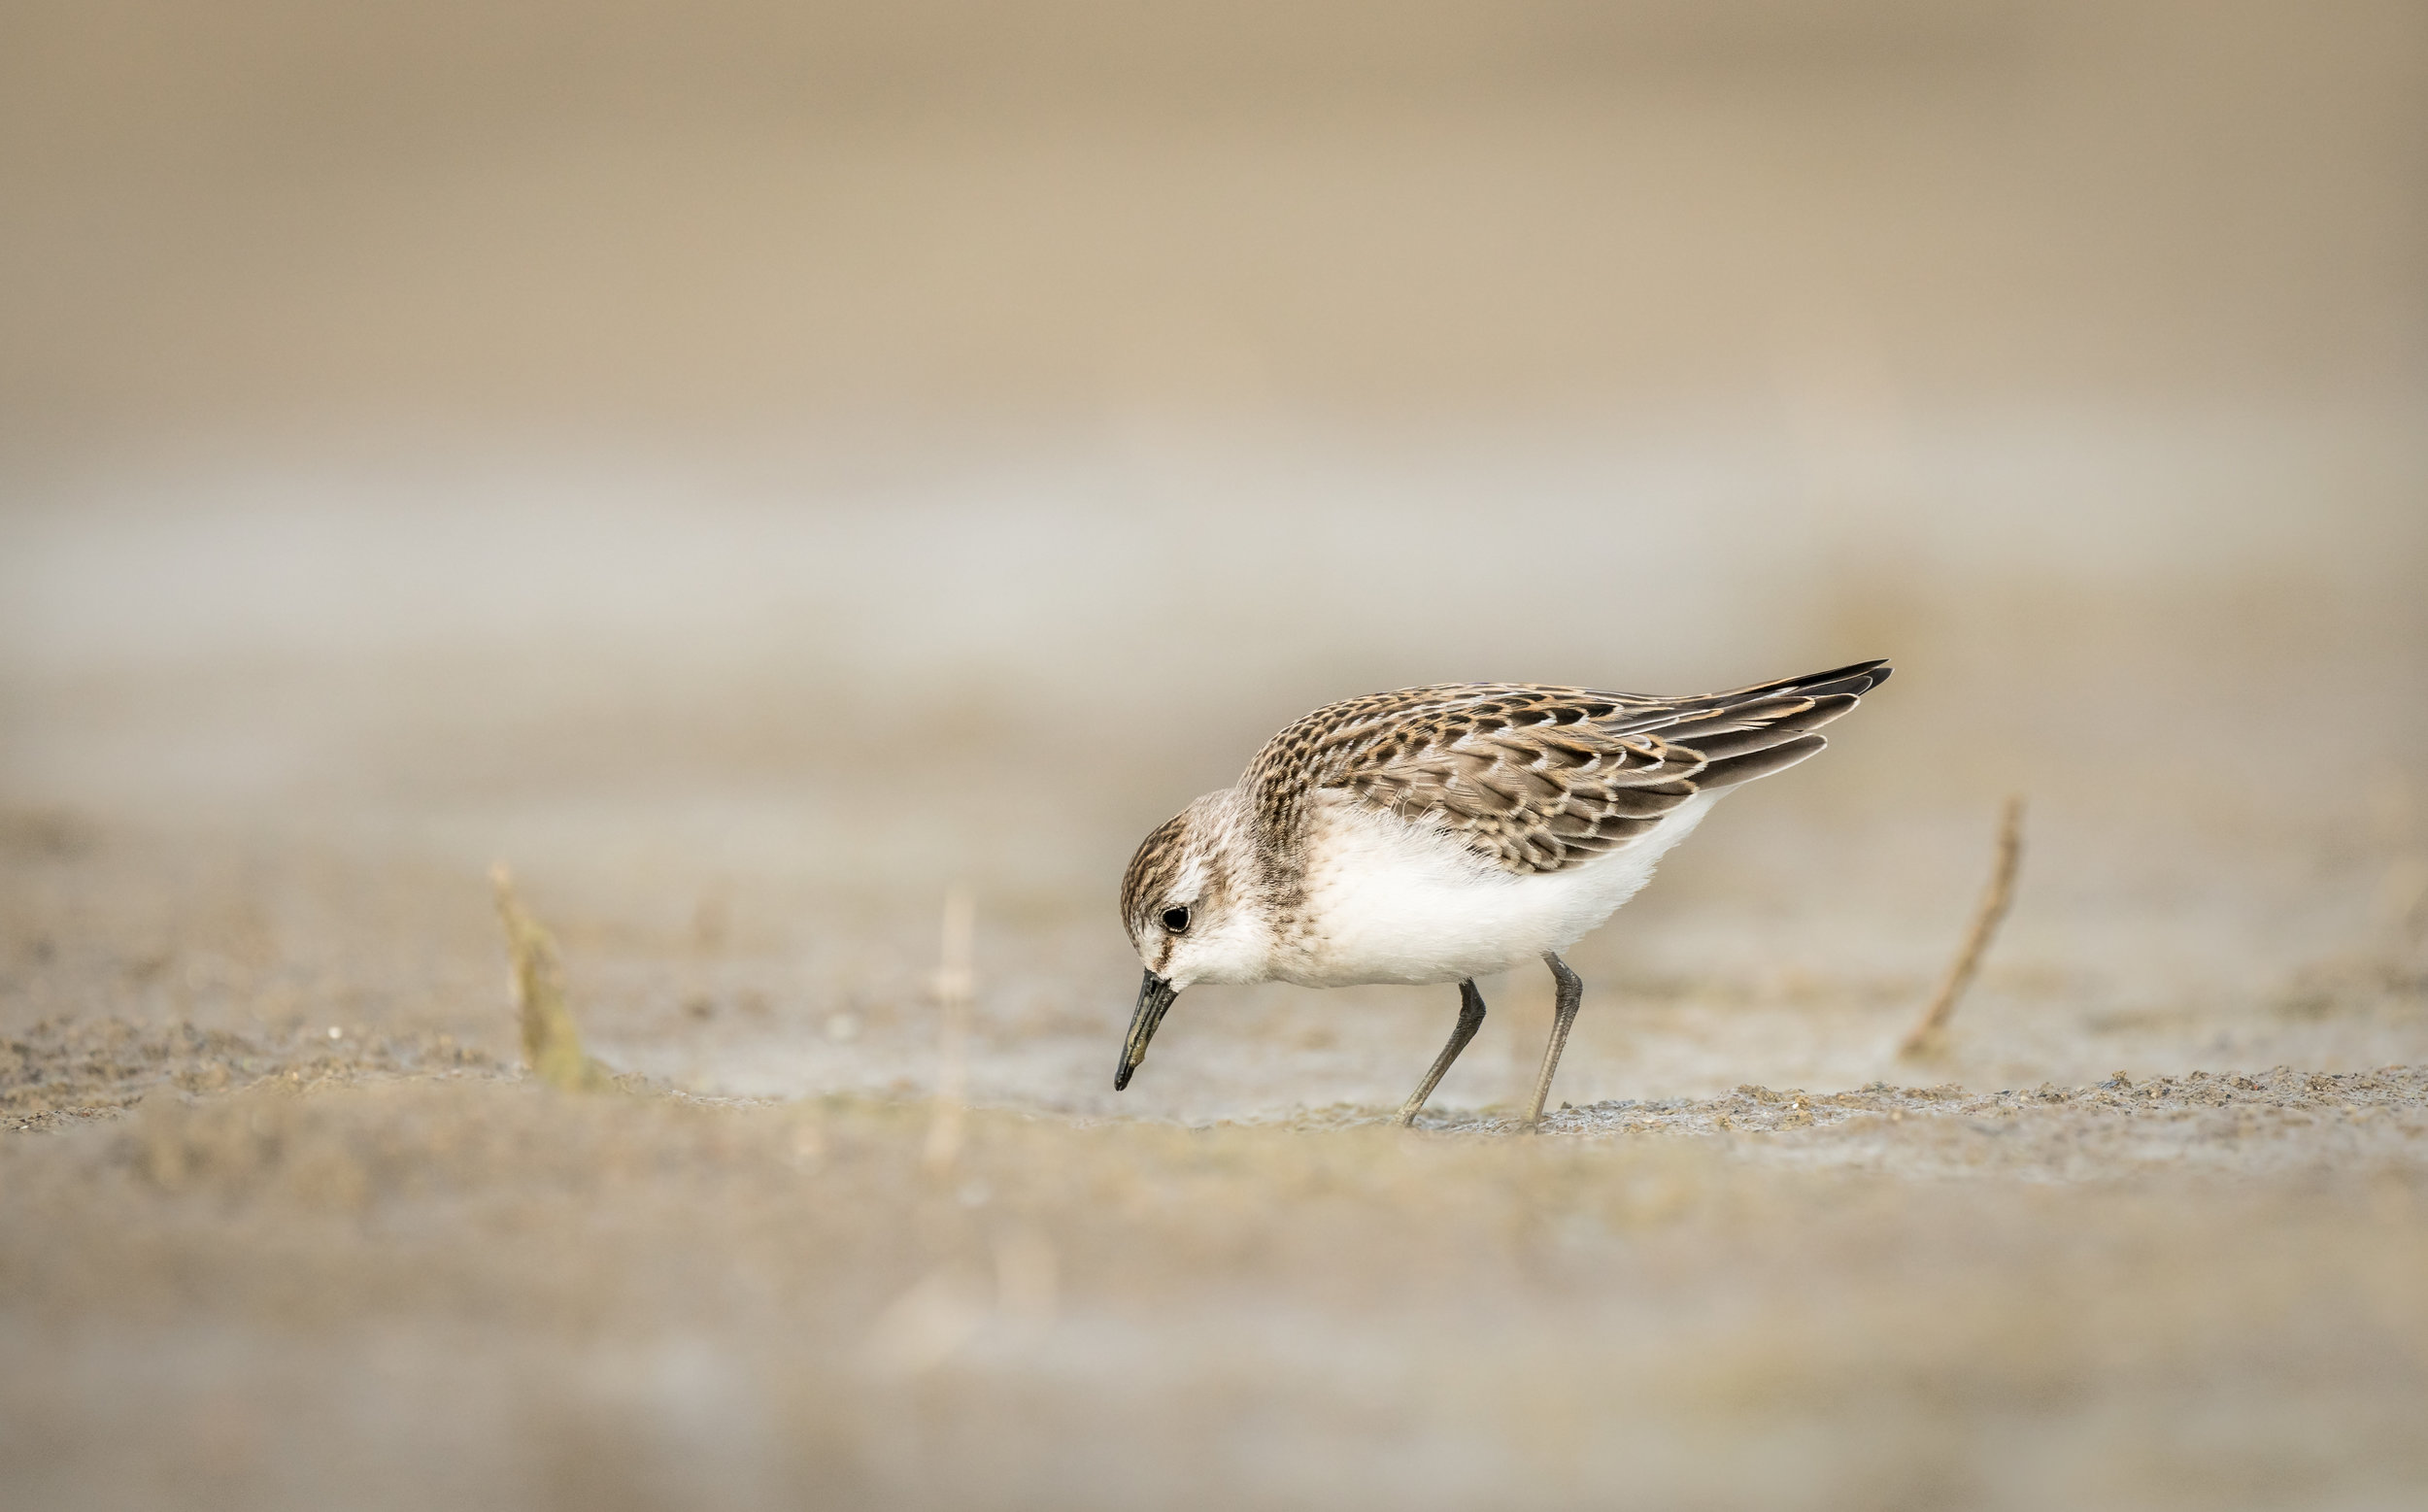 Semipalmated Sandpiper searching the beach for grubs